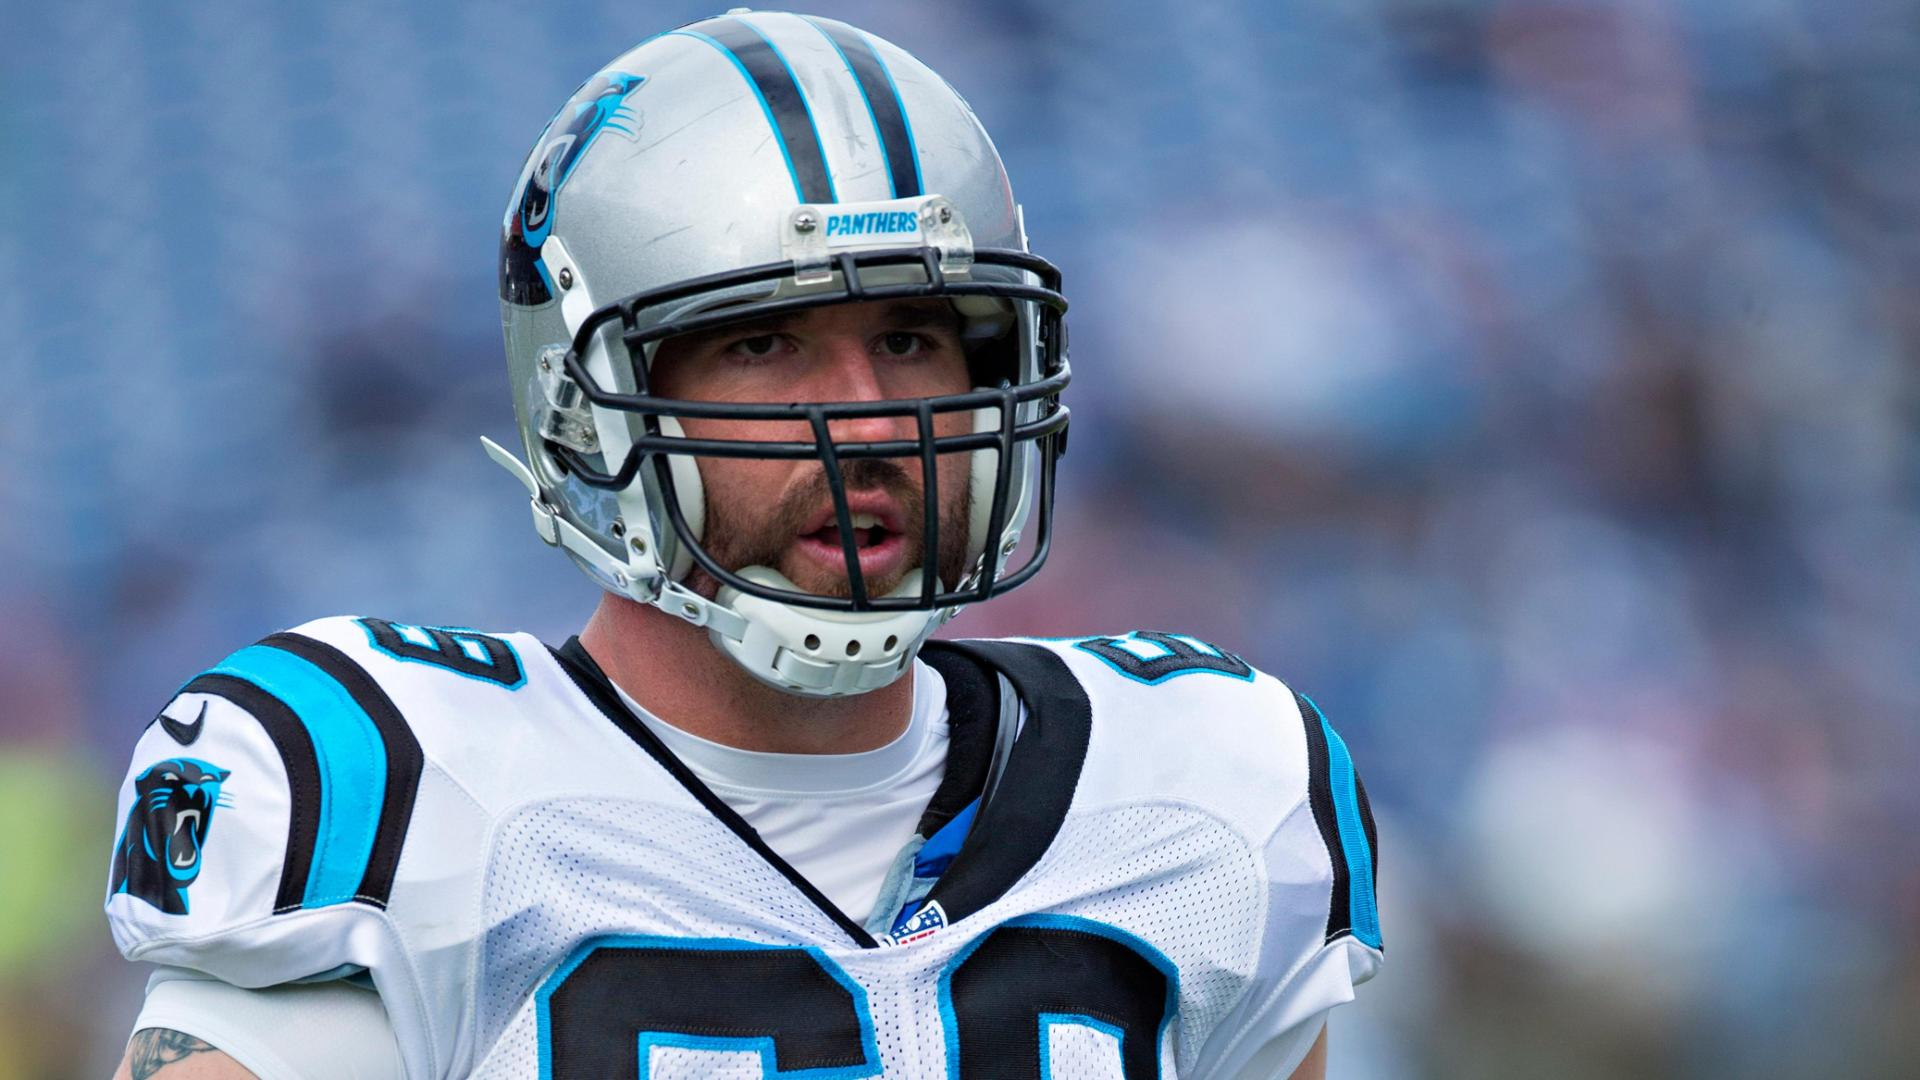 How much will the Panthers miss Jared Allen?